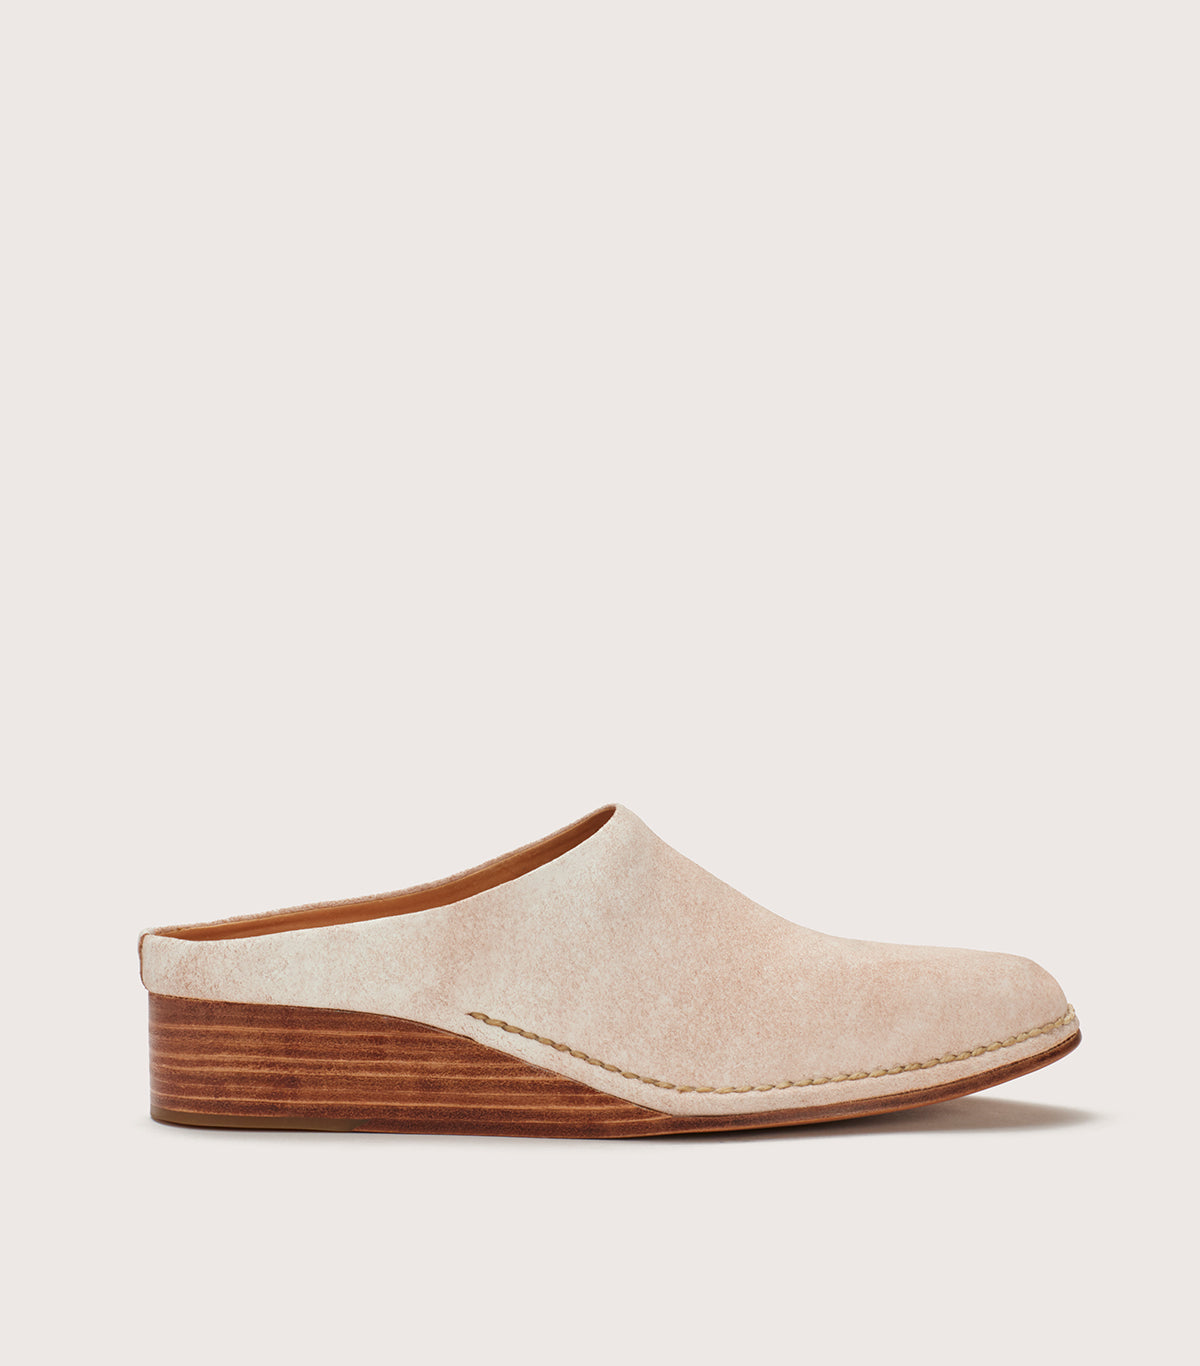 CEREMONIAL WEDGE MULE - WFCERWMULES_RWHT